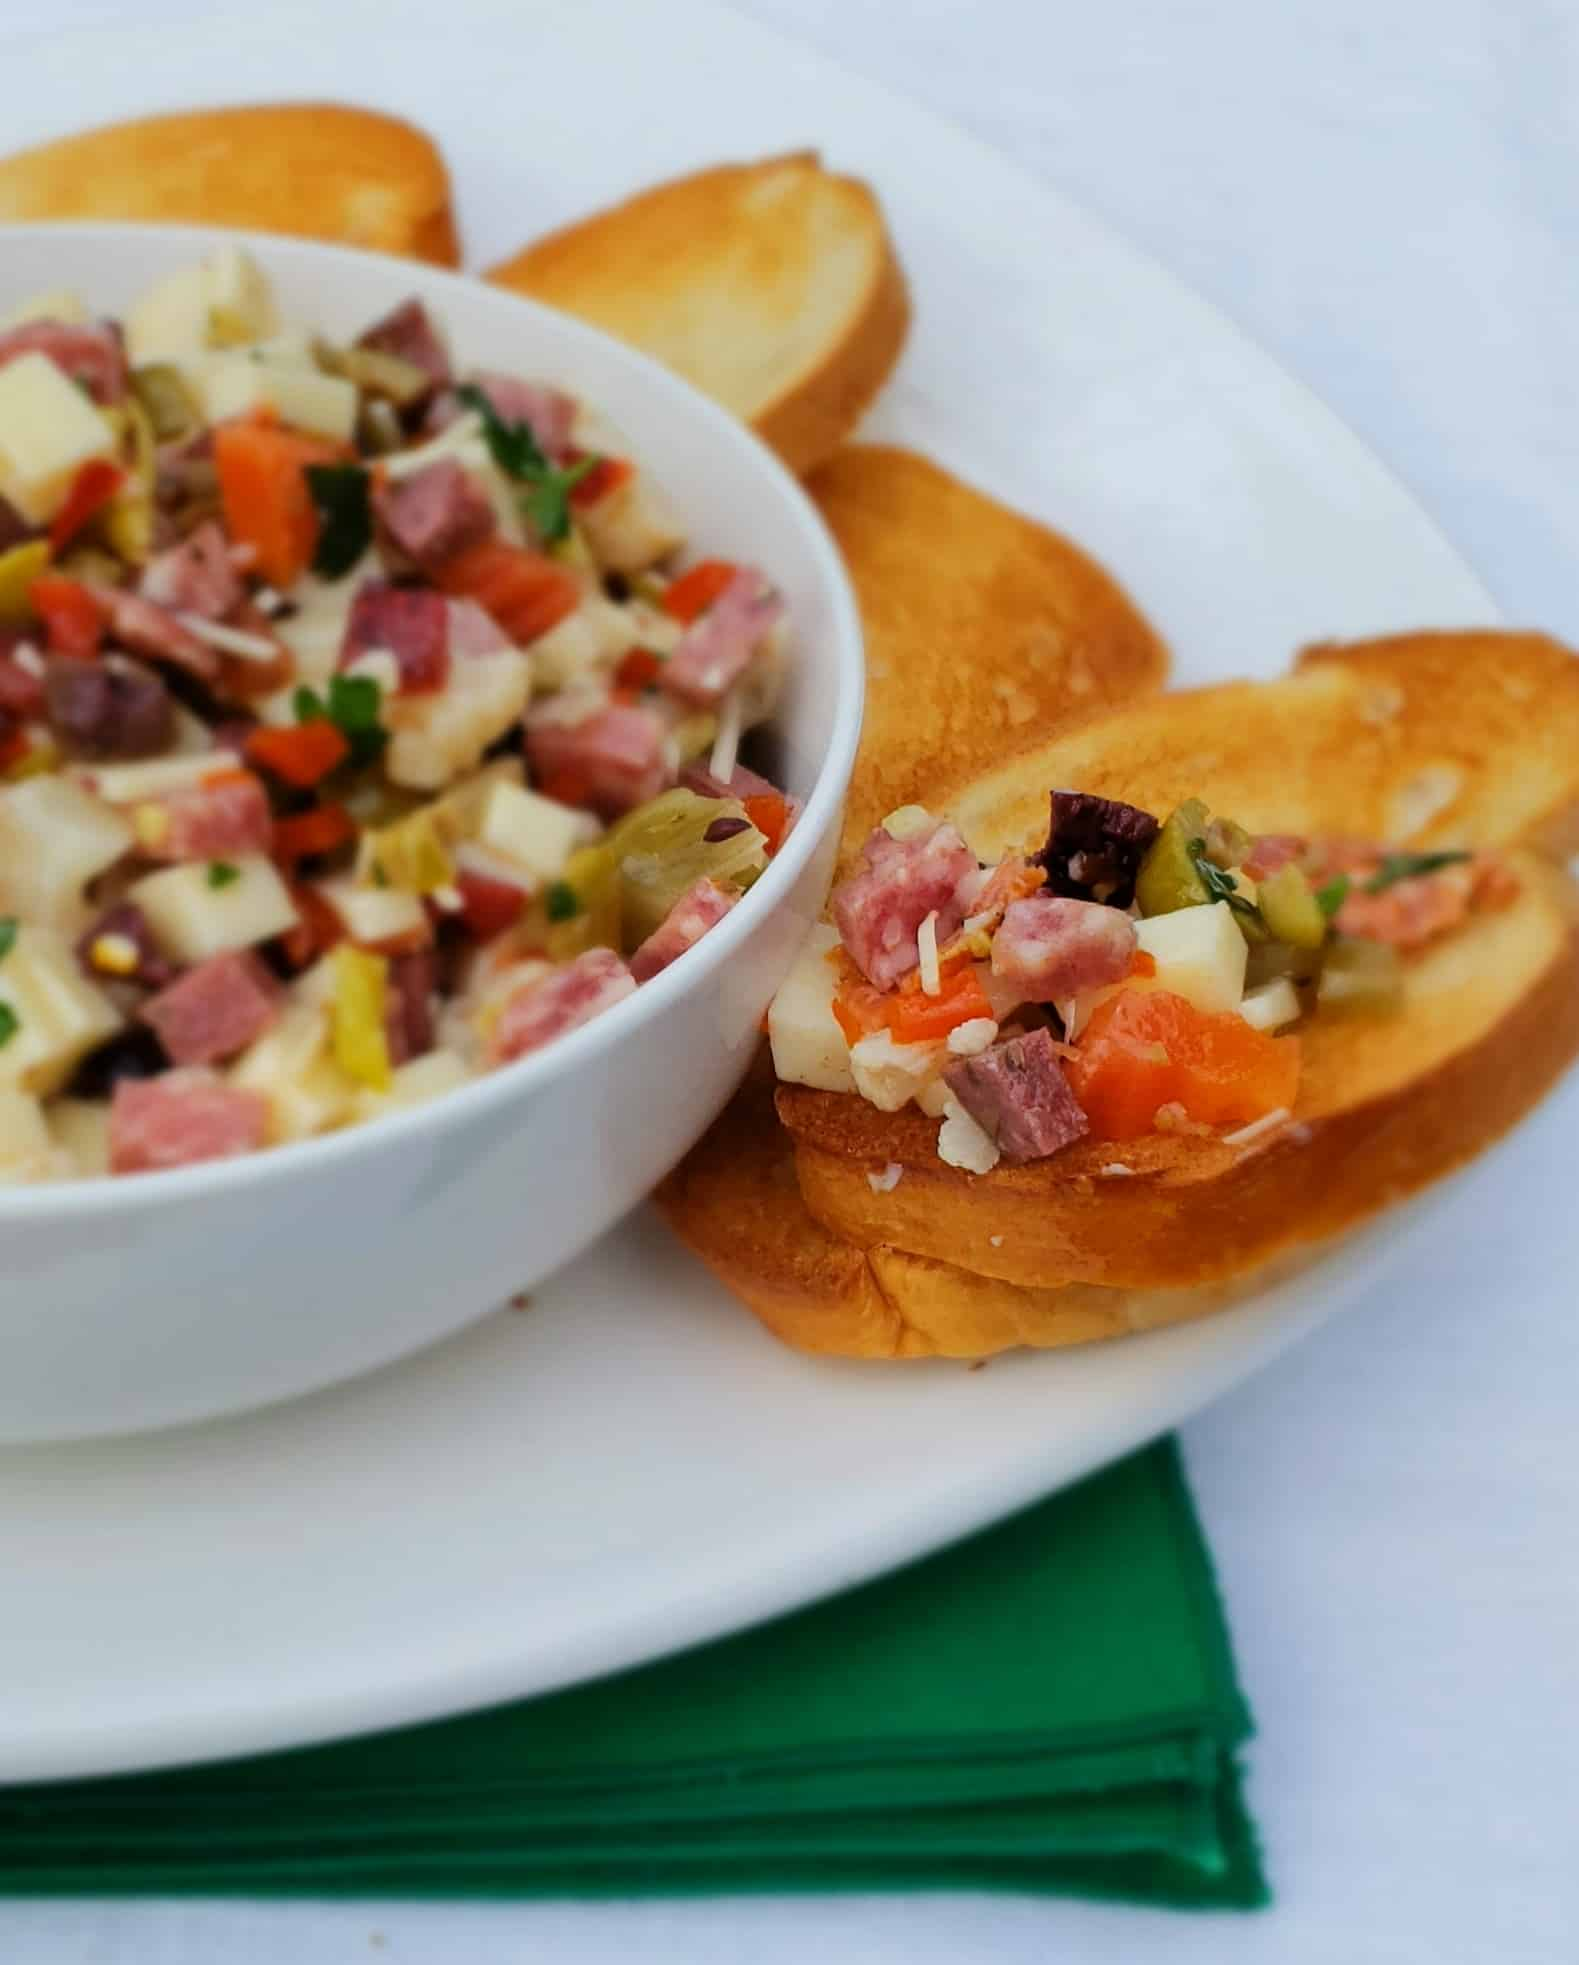 Muffaletta Dip is perfect served with French bread crostini for any occasion not just Mardi Gras or Fat Tuesday